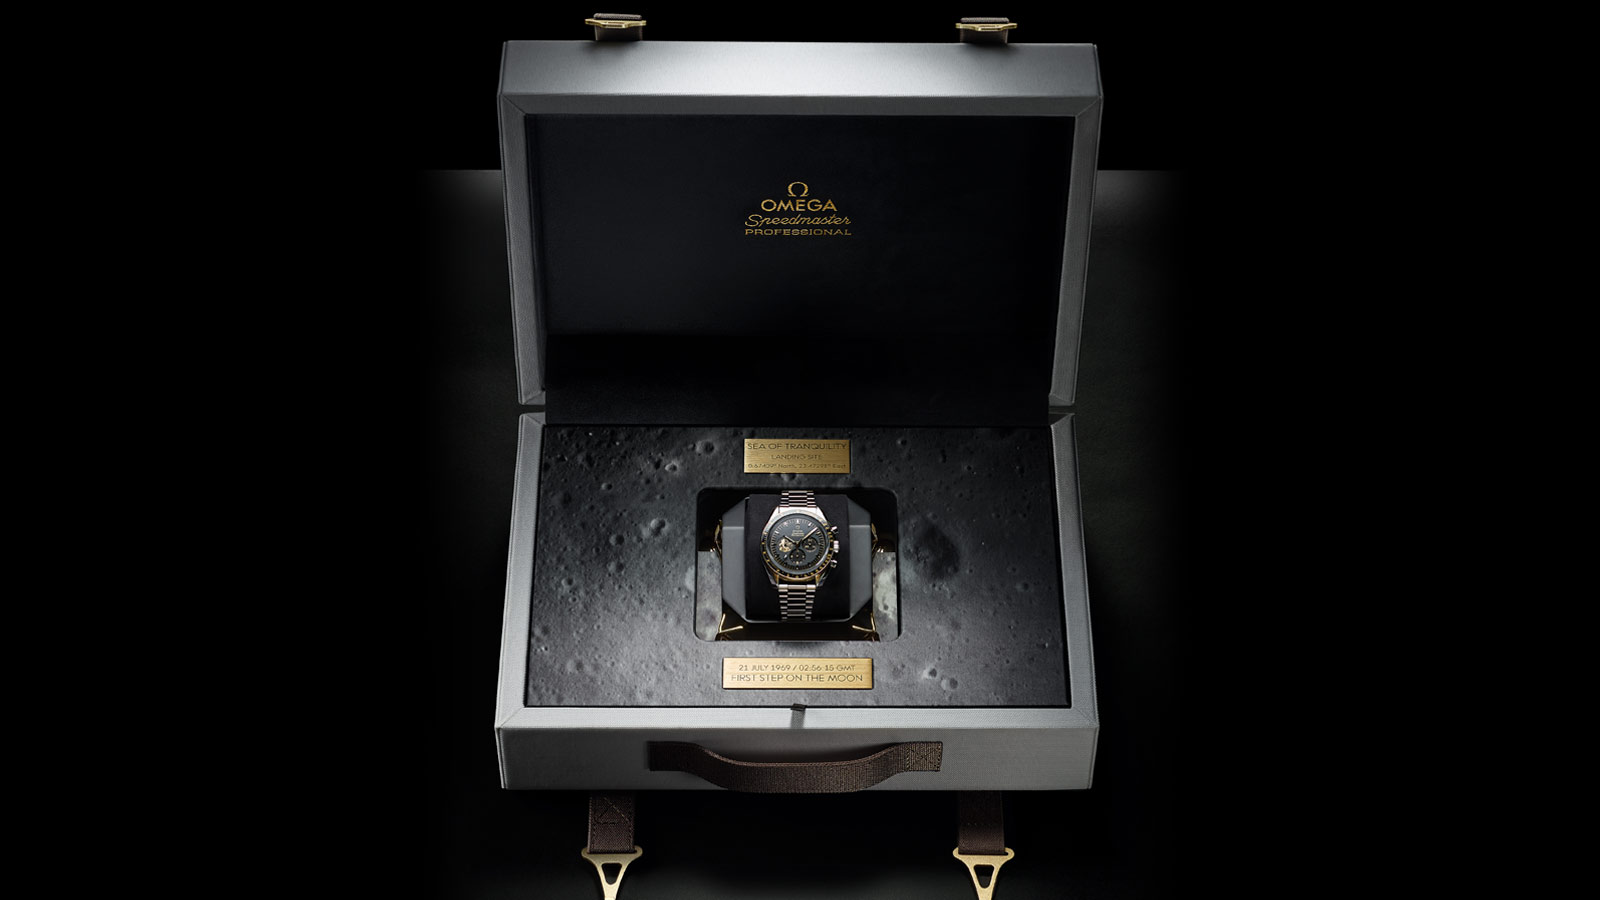 Speedmaster Moonwatch Moonwatch Anniversary Limited Series - 310.20.42.50.01.001 - Visualizzare 4